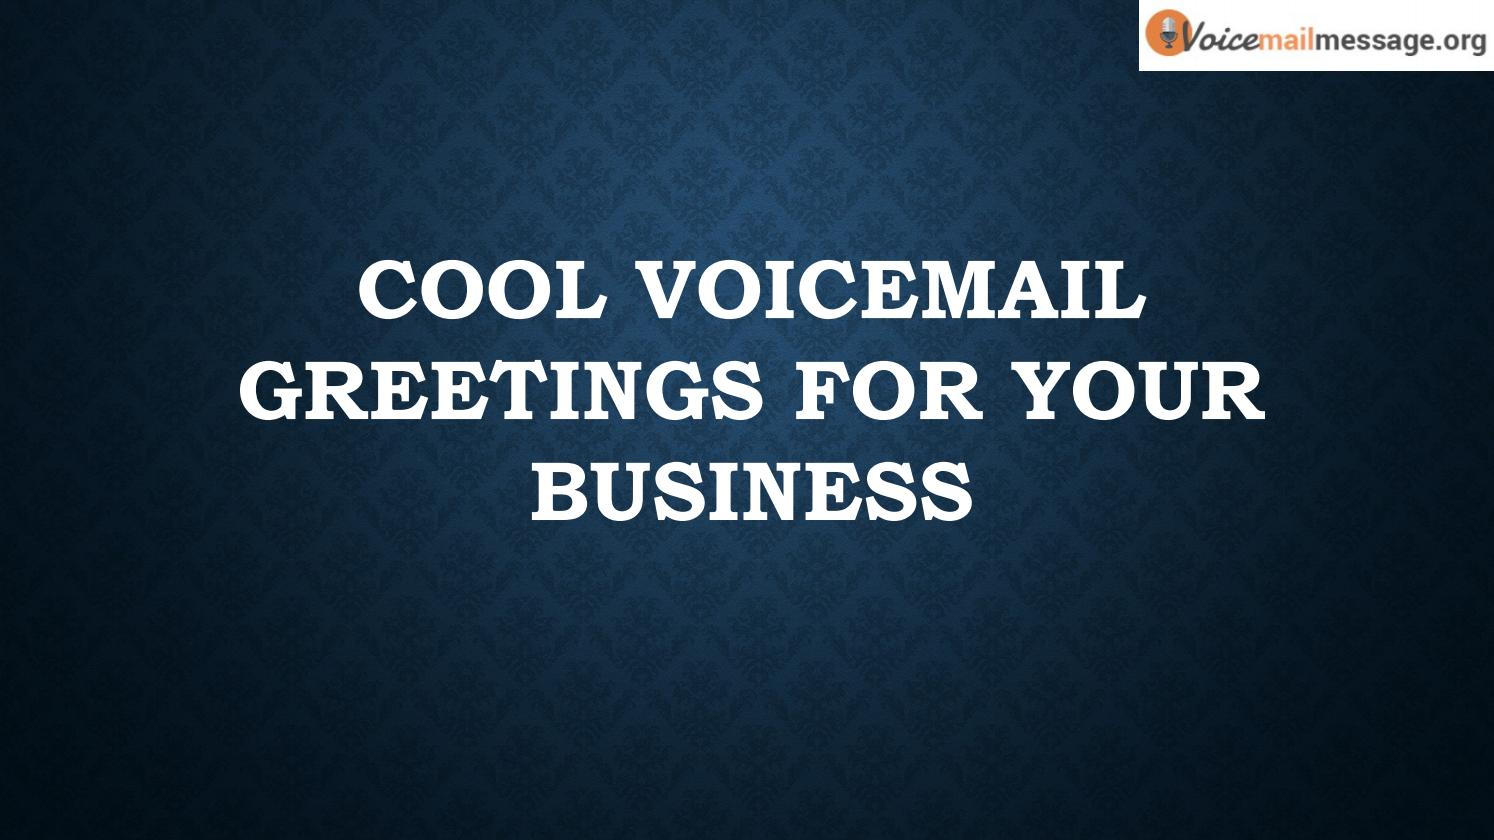 Cool Voicemail Greetings For Your Business By Voicemail Message Issuu